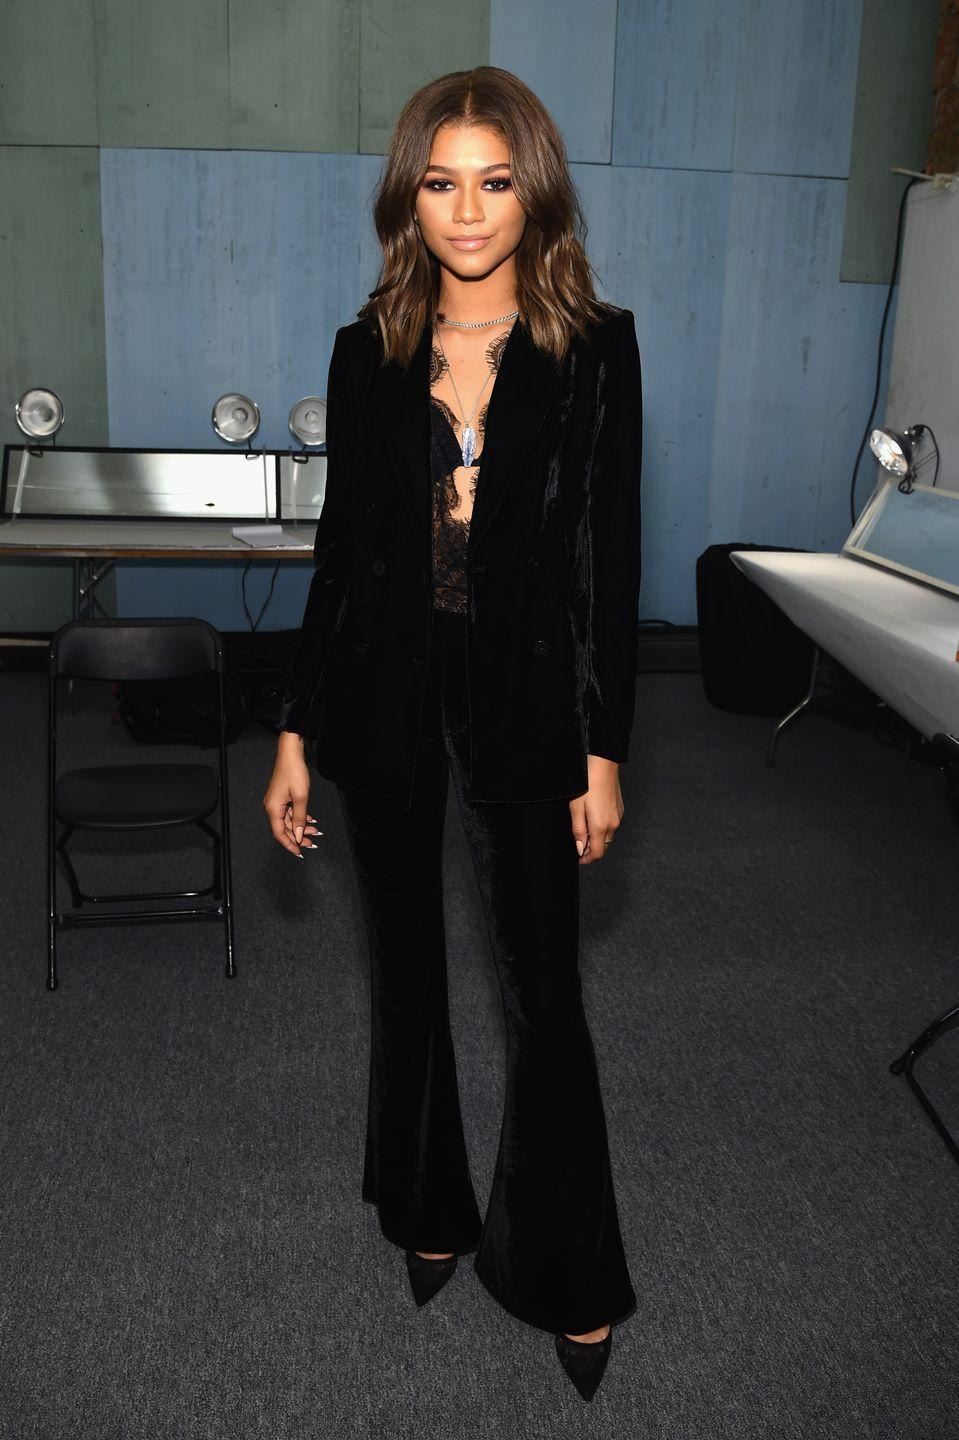 <p>If there's one thing Zendaya can't resist, it's a good suit. Here's a velvet one from her Daya by Zendaya clothing line that she wore as a guest judge on <em>Project Runway.</em></p>